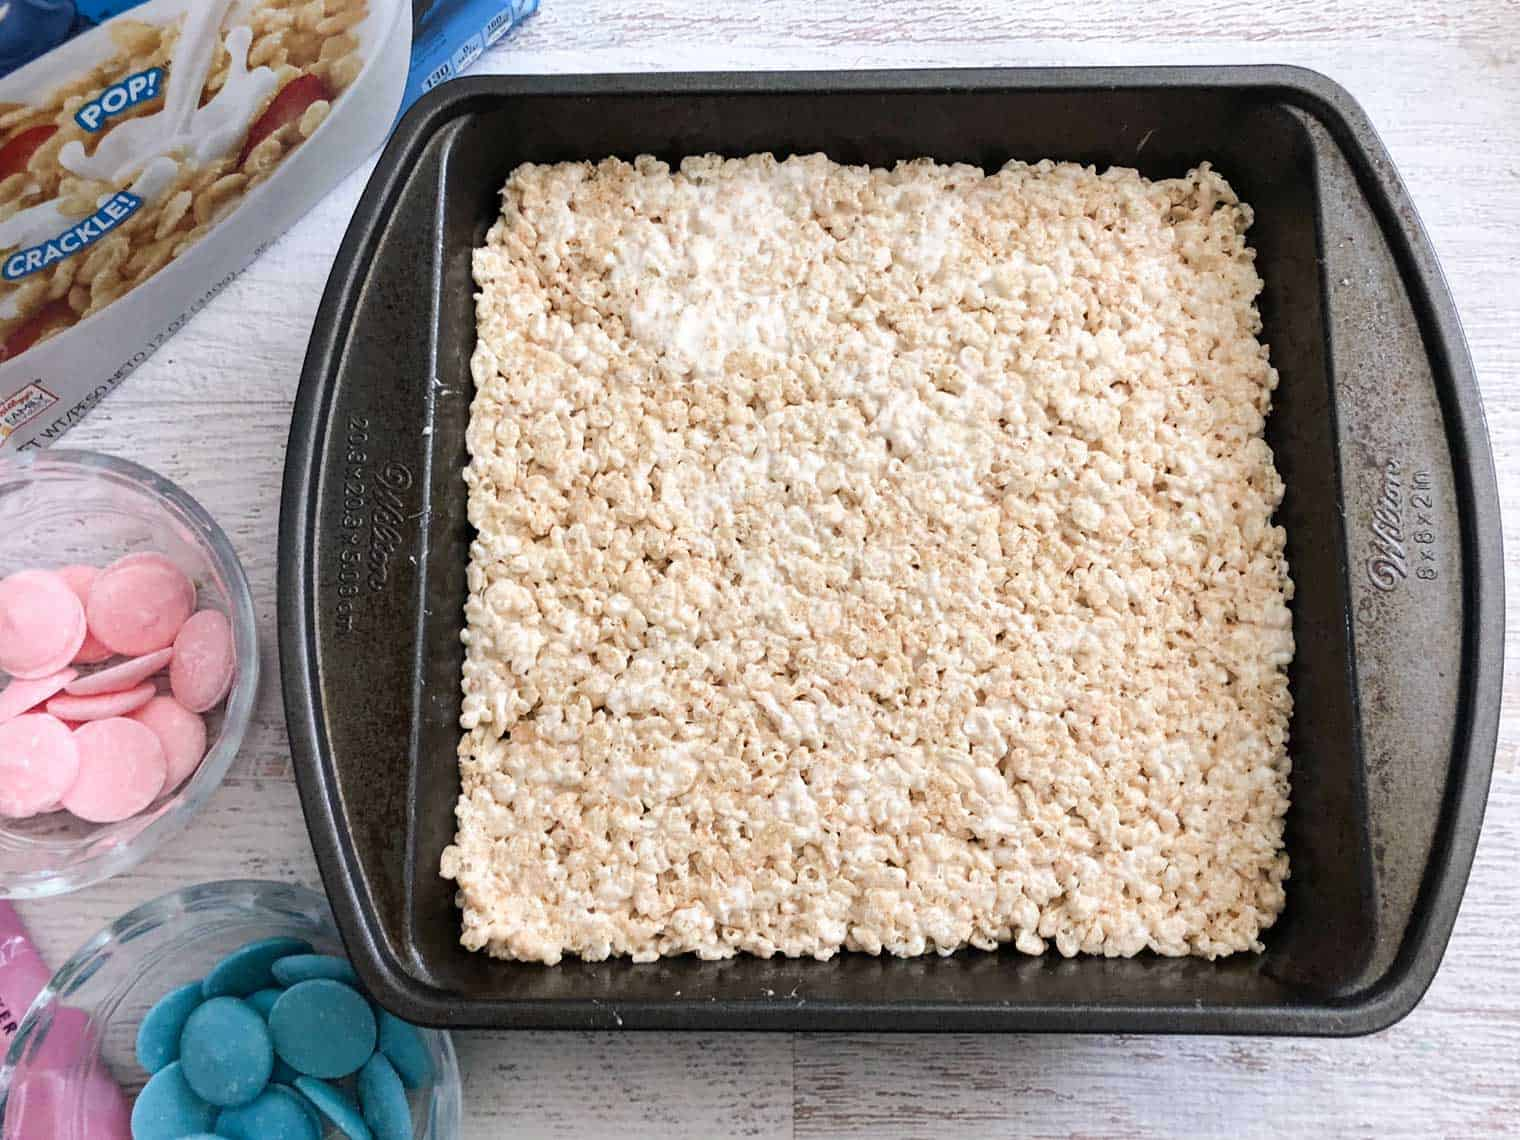 flatten rice krispies mixture into a cake pan and freeze